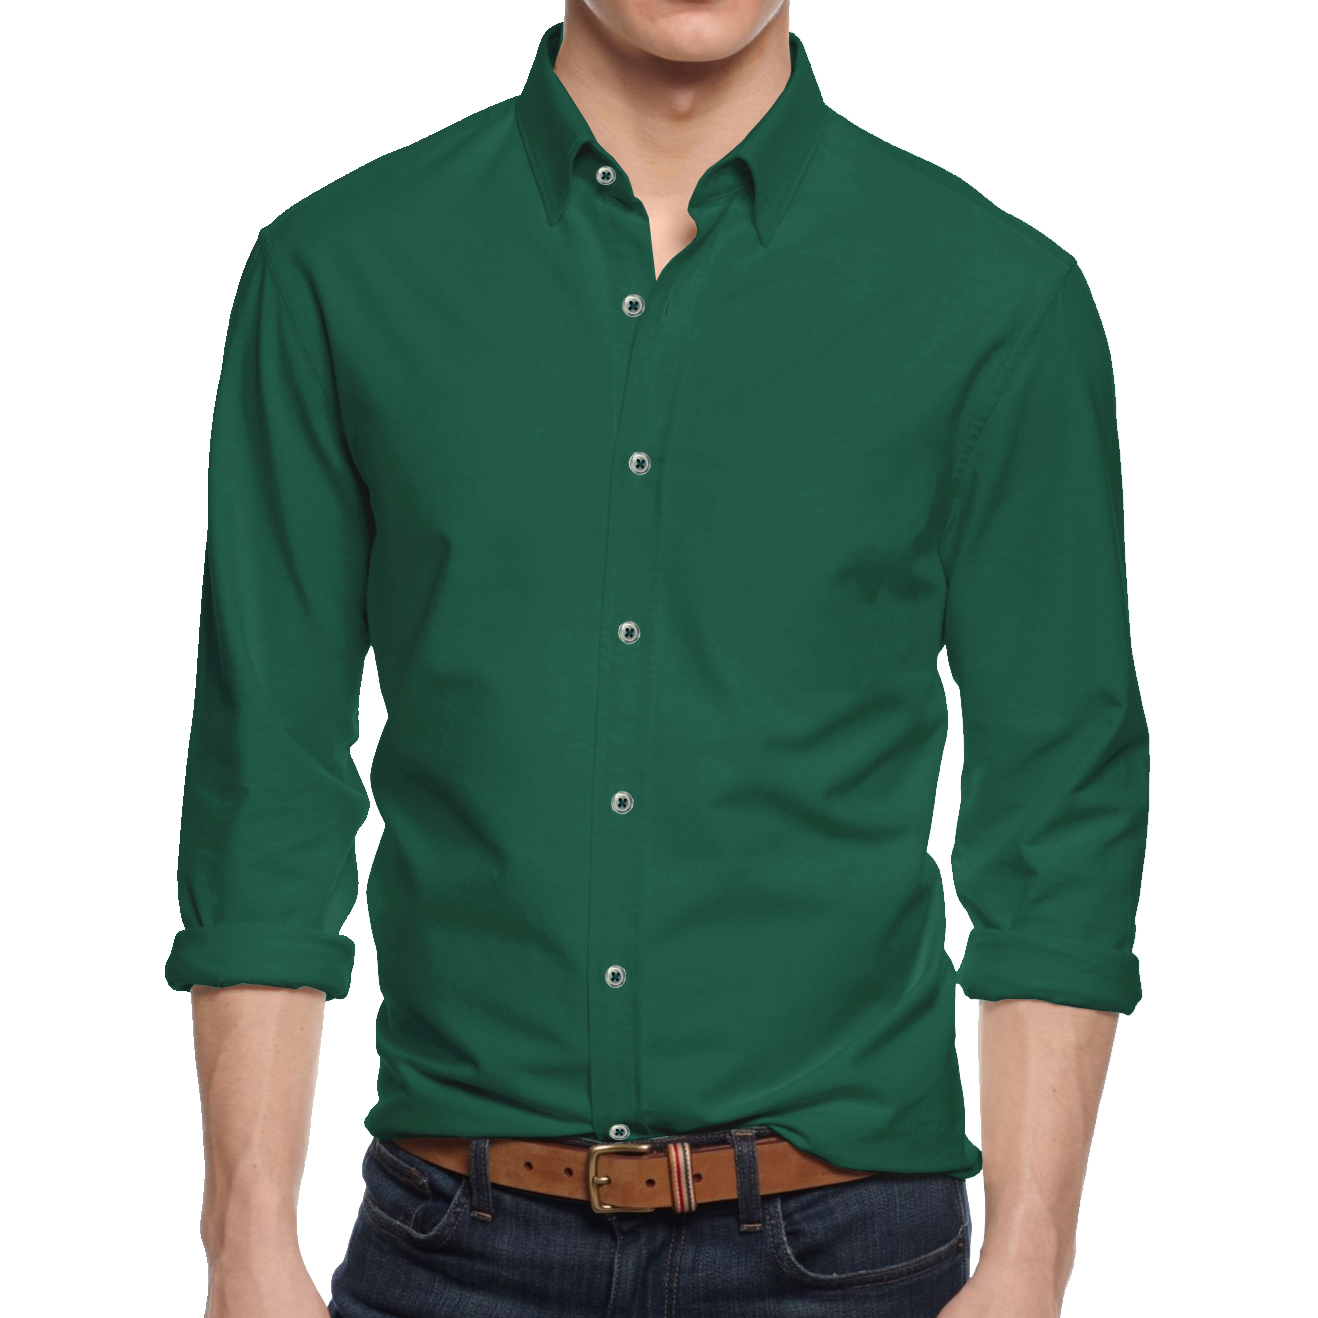 Shop for men's Slim Fit Dress Shirts online at thritingetqay.cf Browse the latest Shirts styles for men from Jos. A Bank. FREE shipping on orders over $